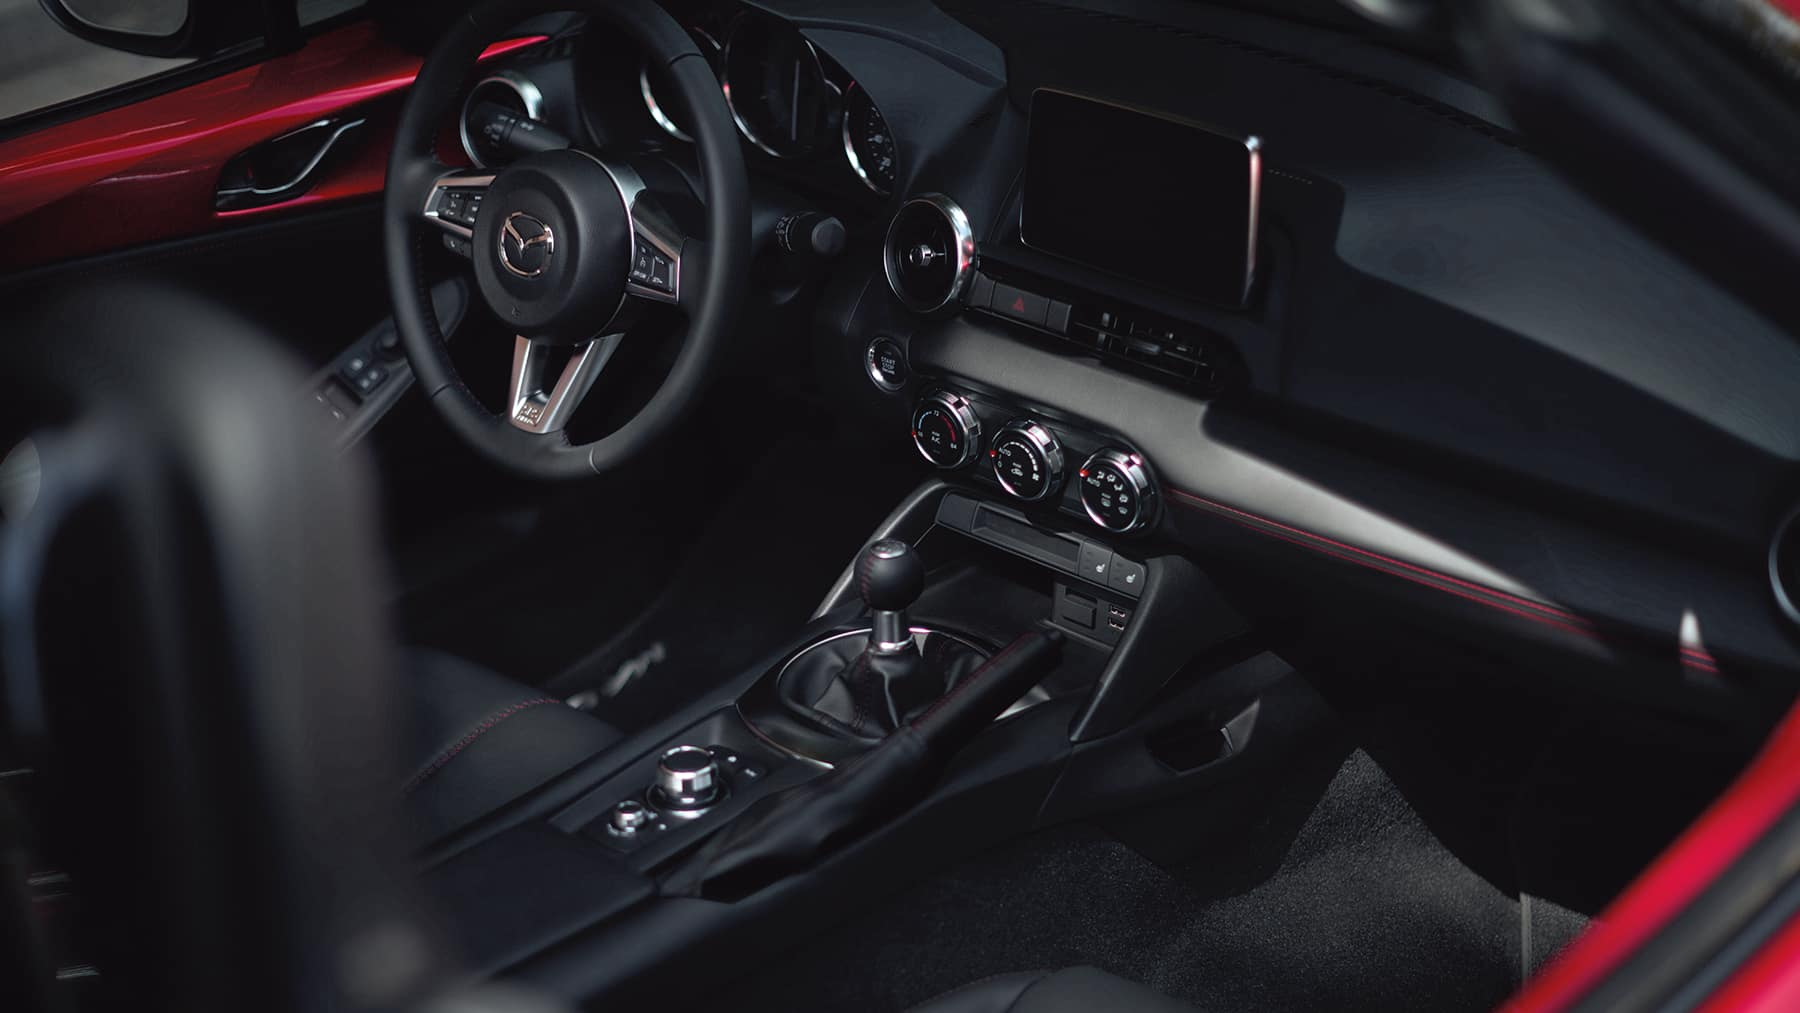 2020 Mazda MX-5 Miata Dasboard Features